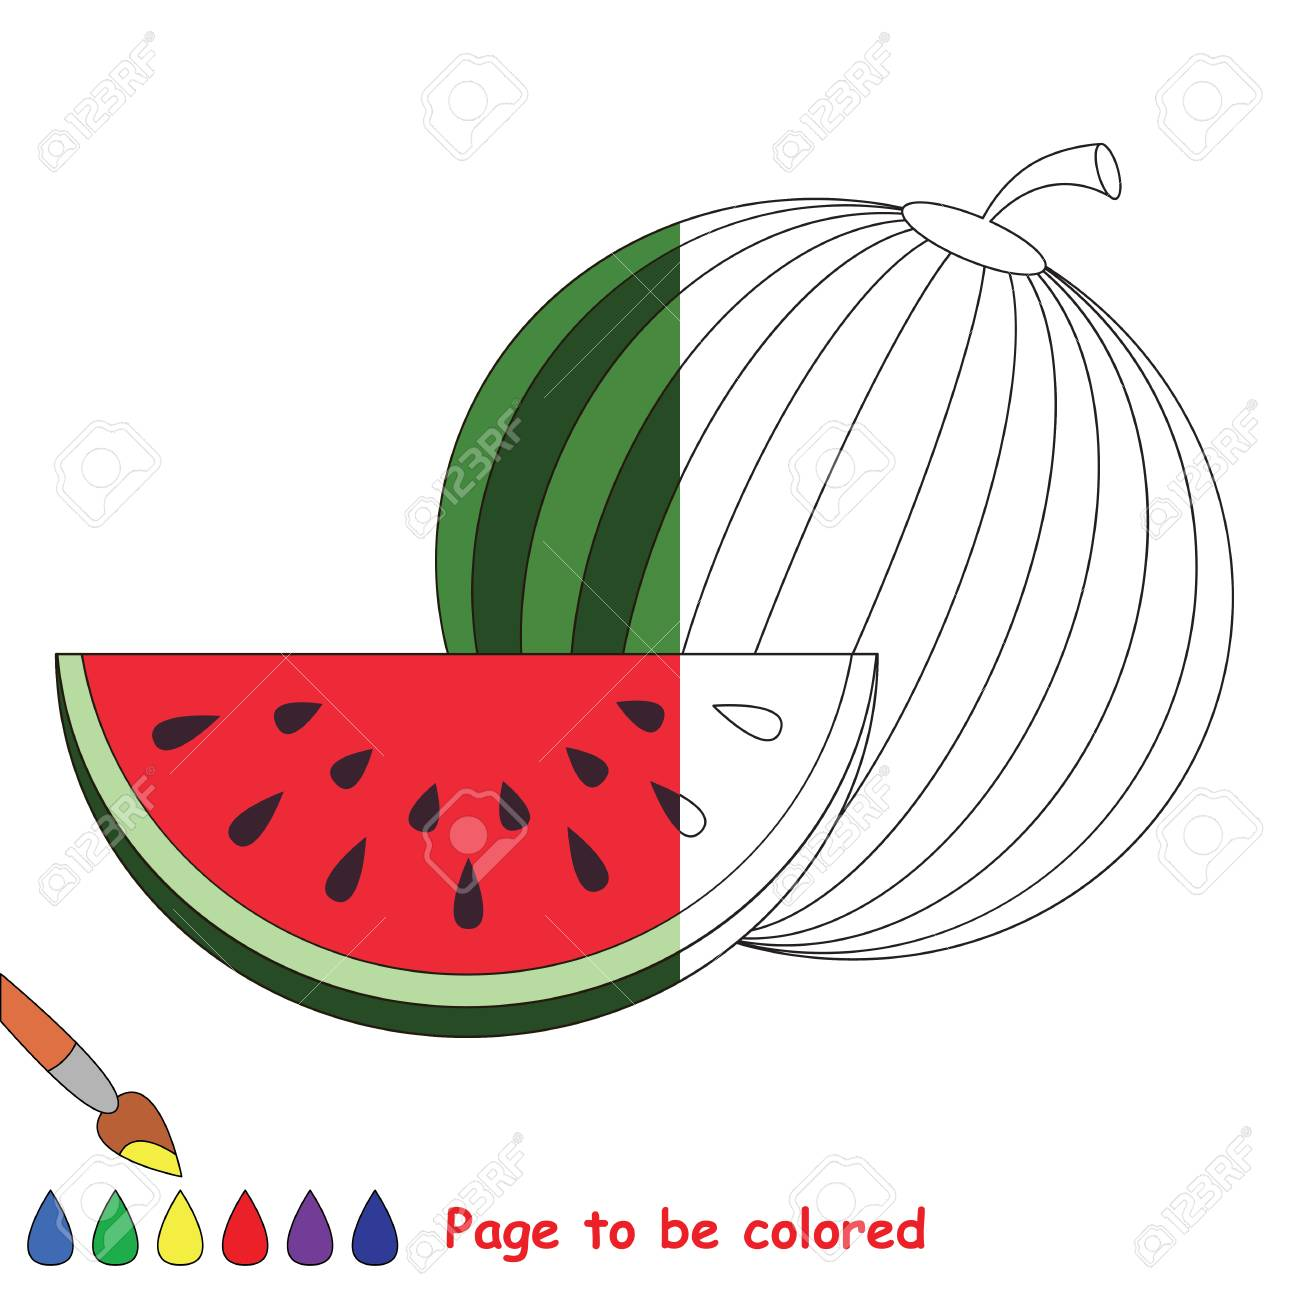 Watermelon And Slice To Be Colored, The Coloring Book To Educate ...